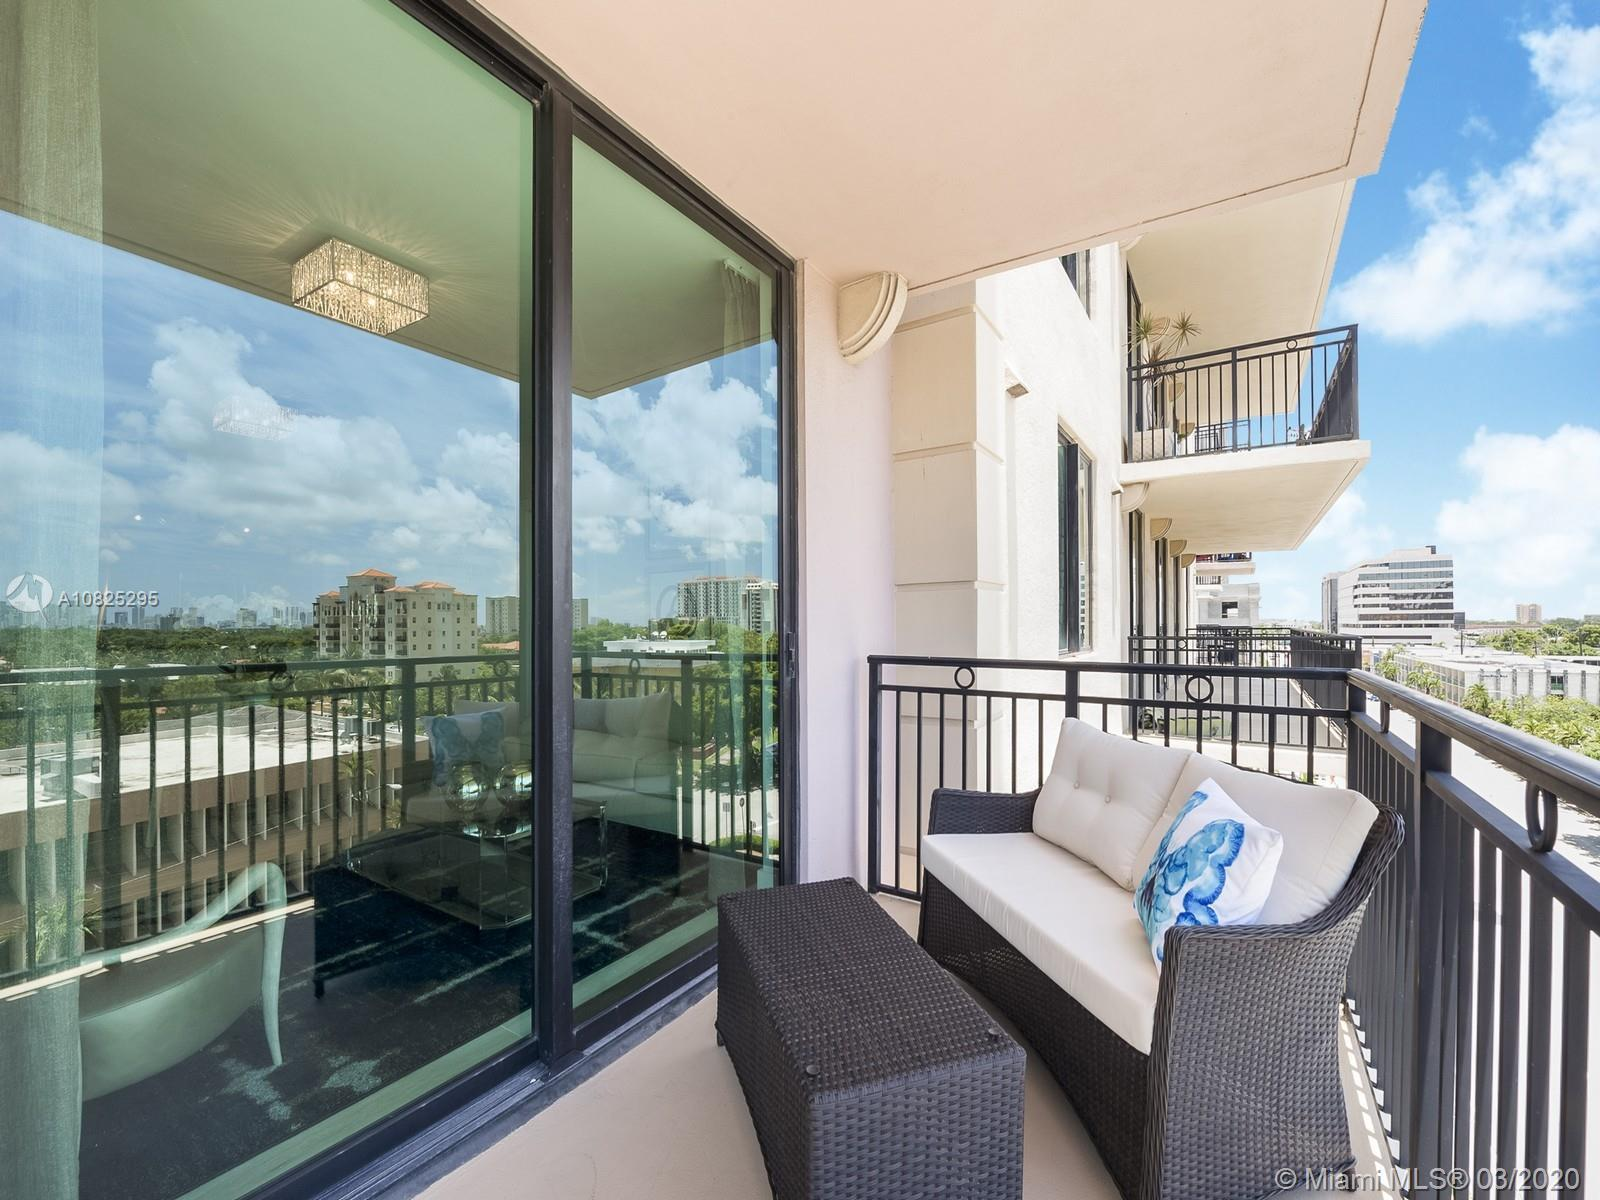 1300 Ponce de Leon is now introducing unit 304 to the marketplace!  Residence 304 offers 2 bedrooms